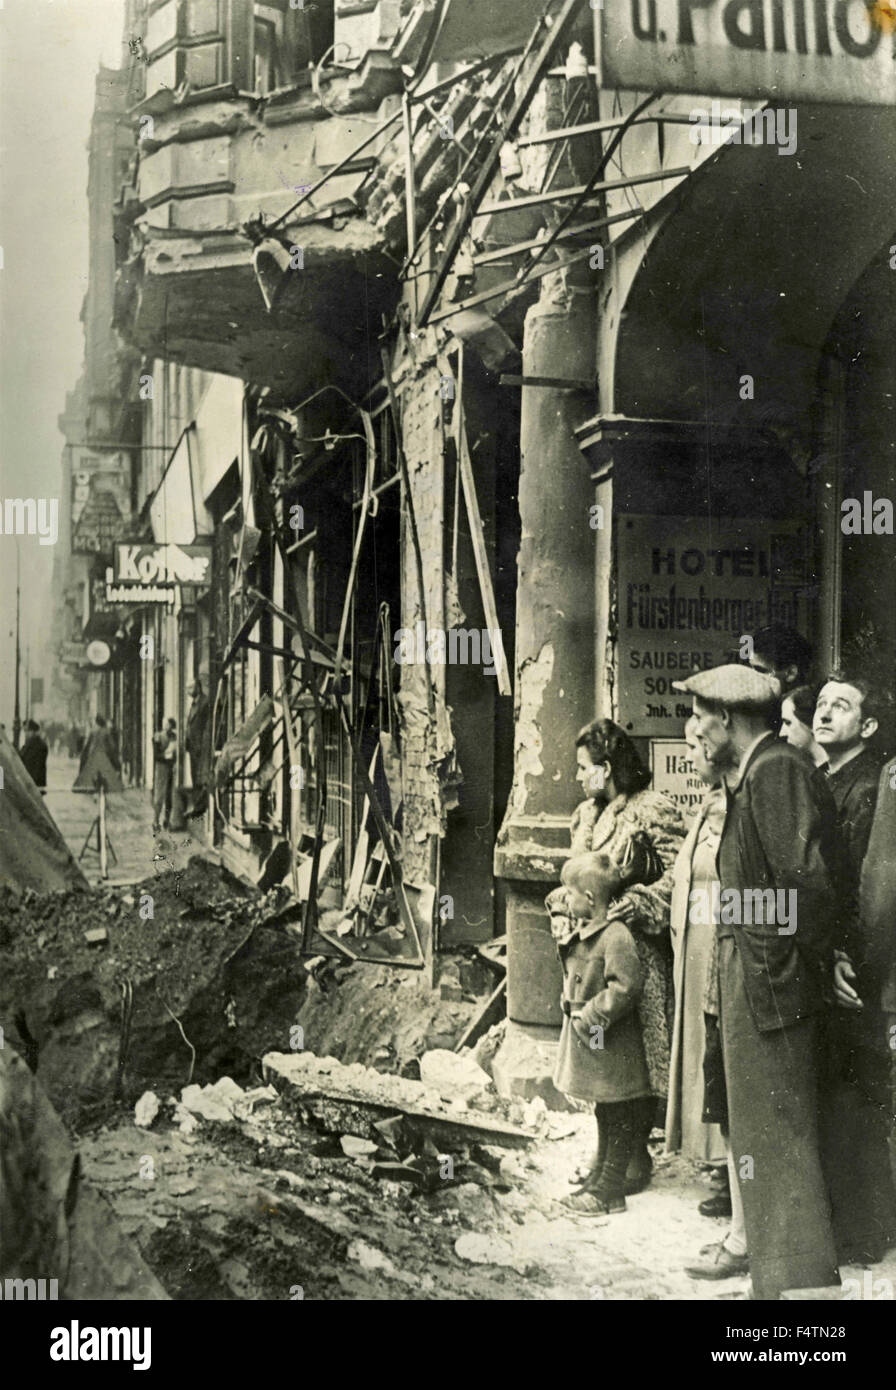 Bombed civilian targets in Germany by the British, World War II, Germany - Stock Image